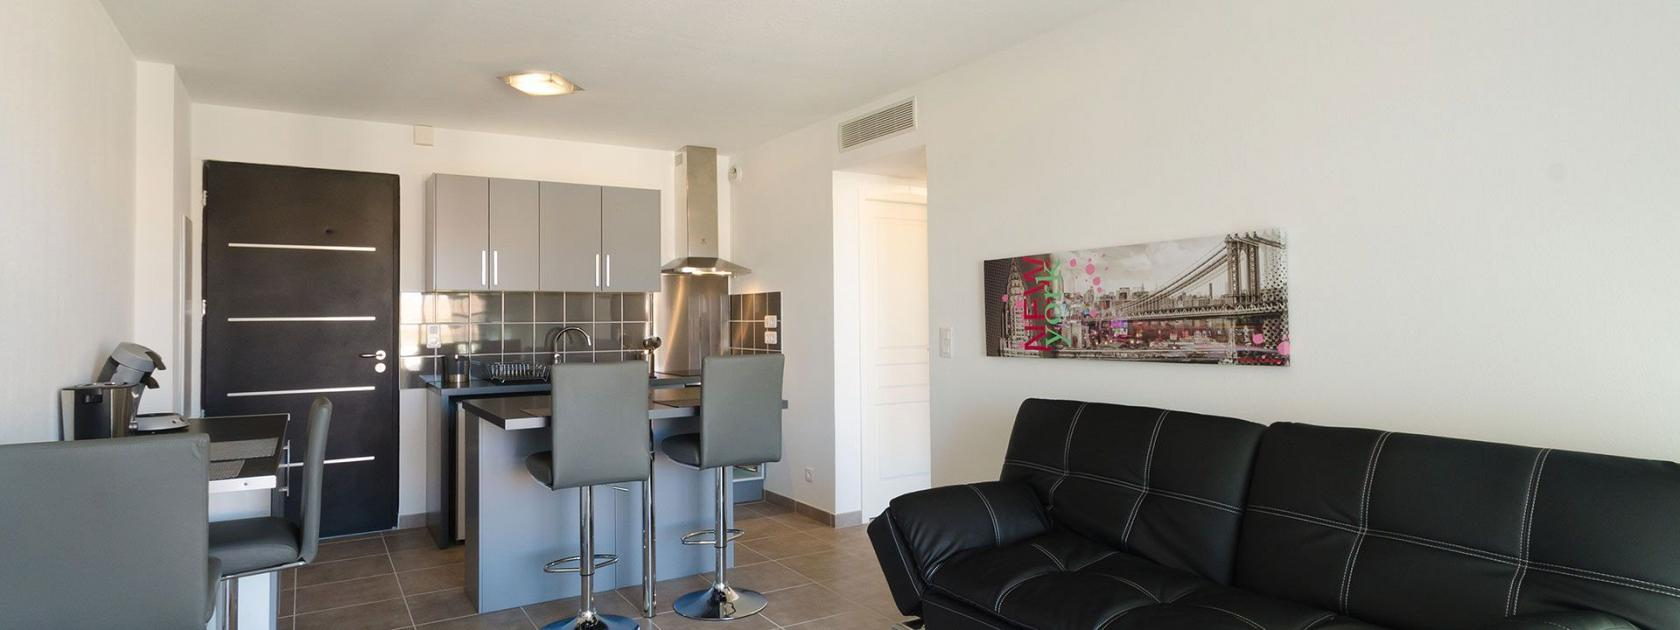 Location Appartement Balagne Calvi